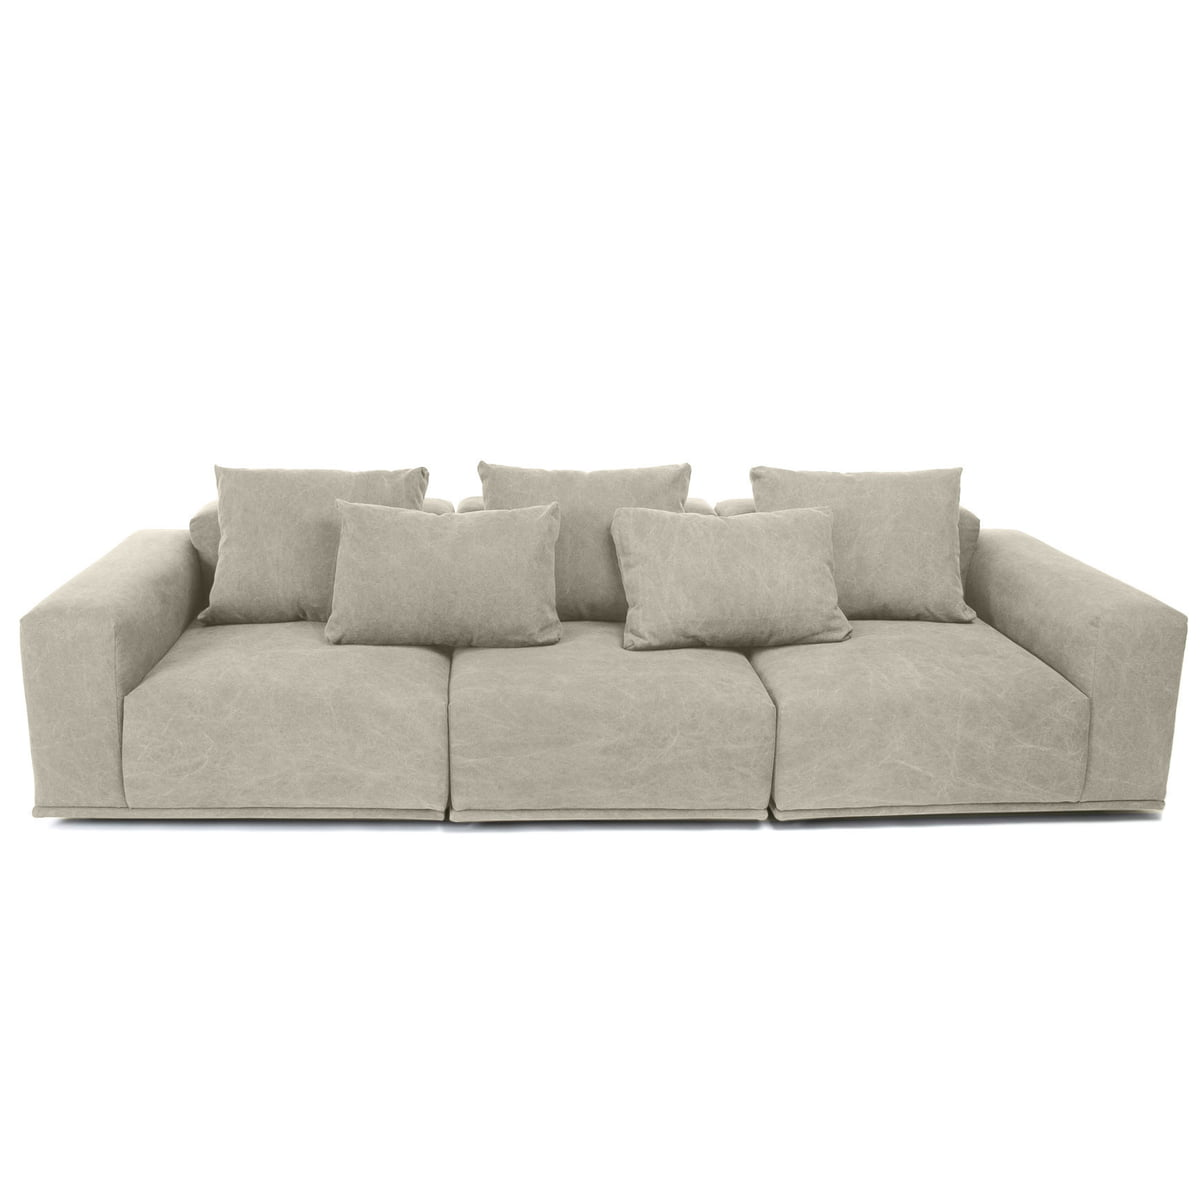 Outstanding Norr11 Madonna Sofa 3 Seater Incl Cushion Washed Beige 05 Onthecornerstone Fun Painted Chair Ideas Images Onthecornerstoneorg